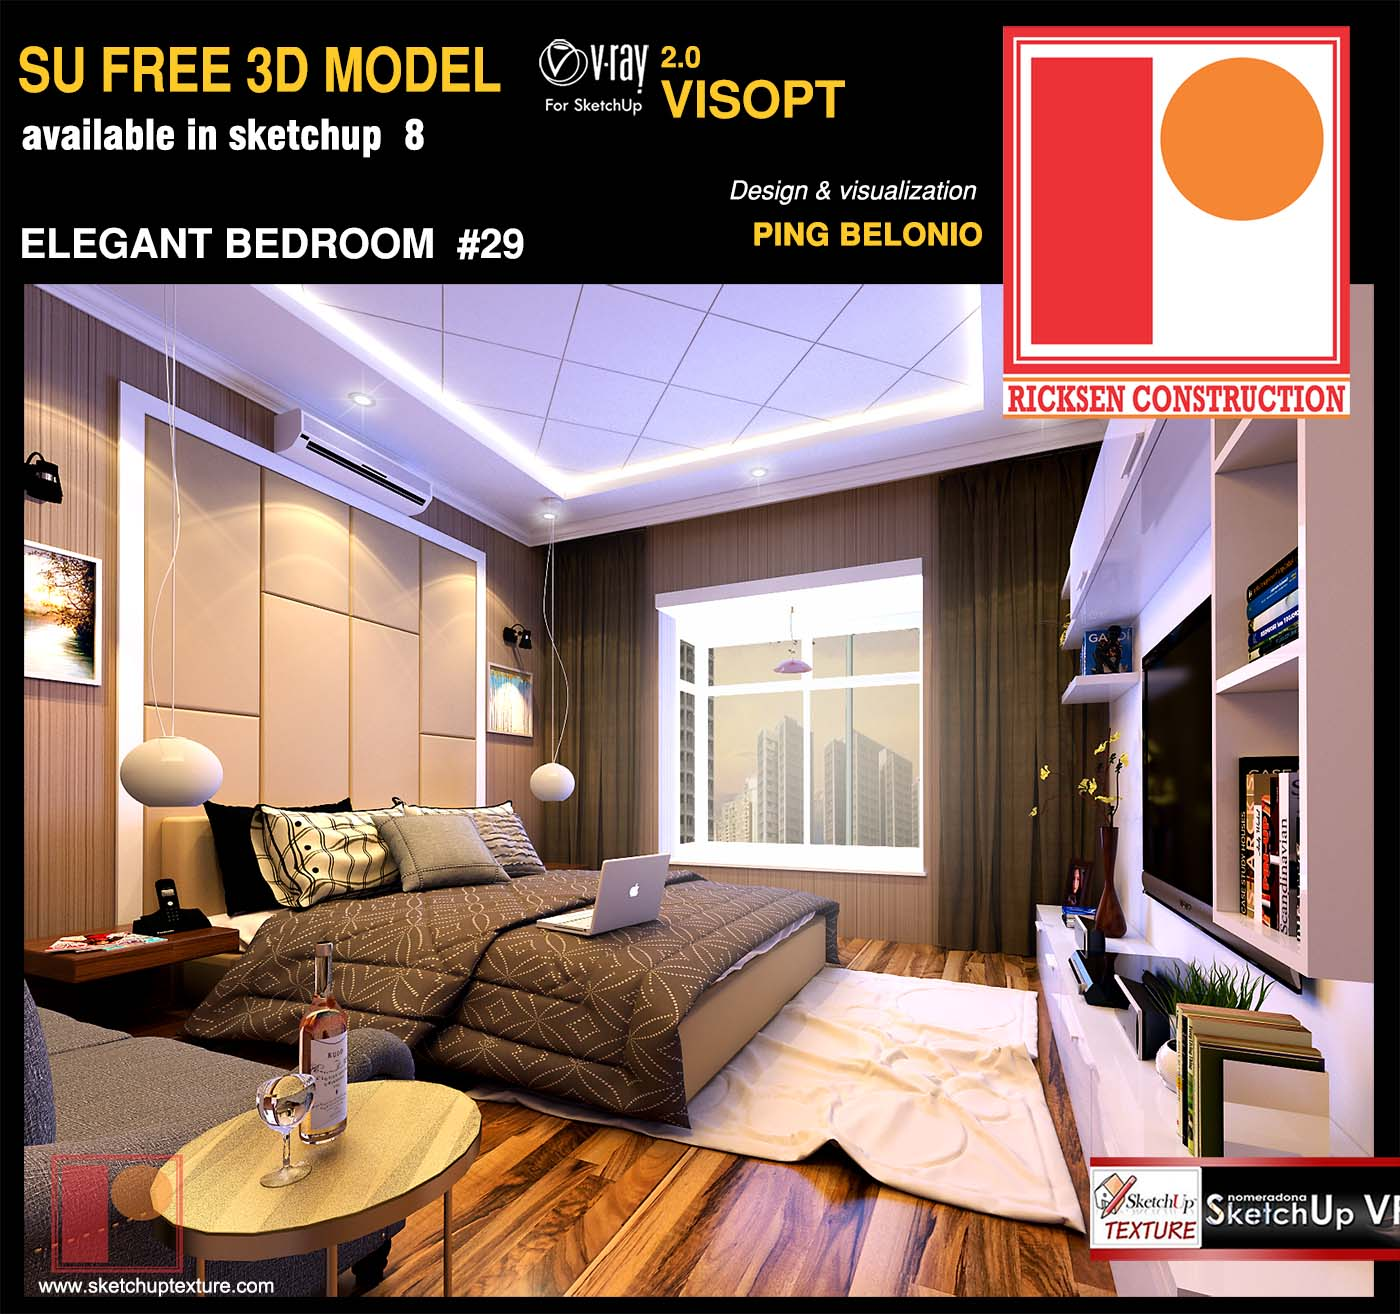 SKETCHUP TEXTURE SKETCHUP MODEL BEDROOM